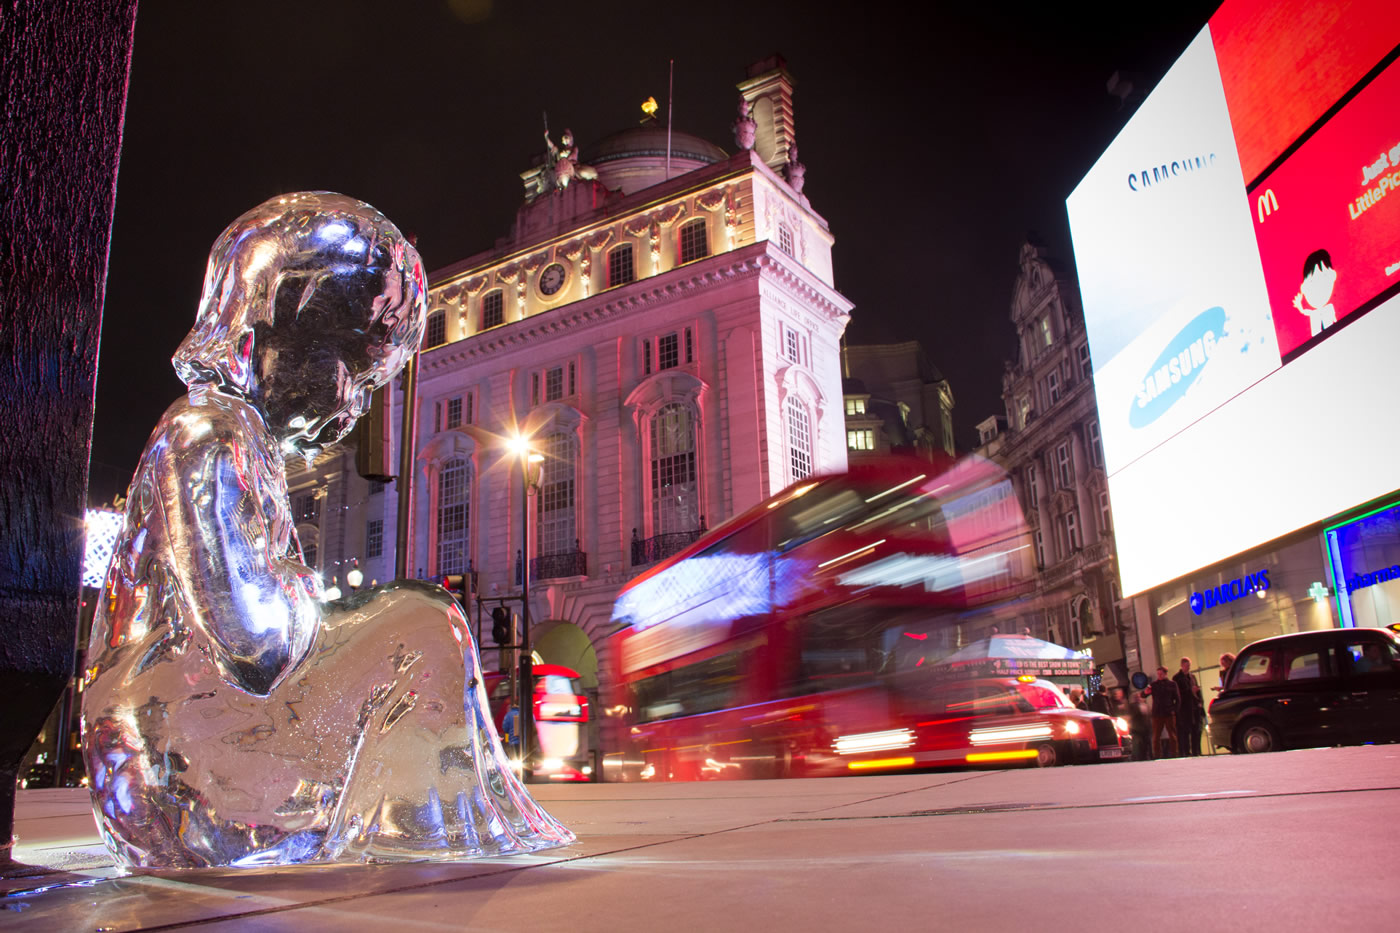 The final ice sculpture No.7 by the bright lights of Piccadilly Circus, with a bus rushing past. #pleaselookafterme